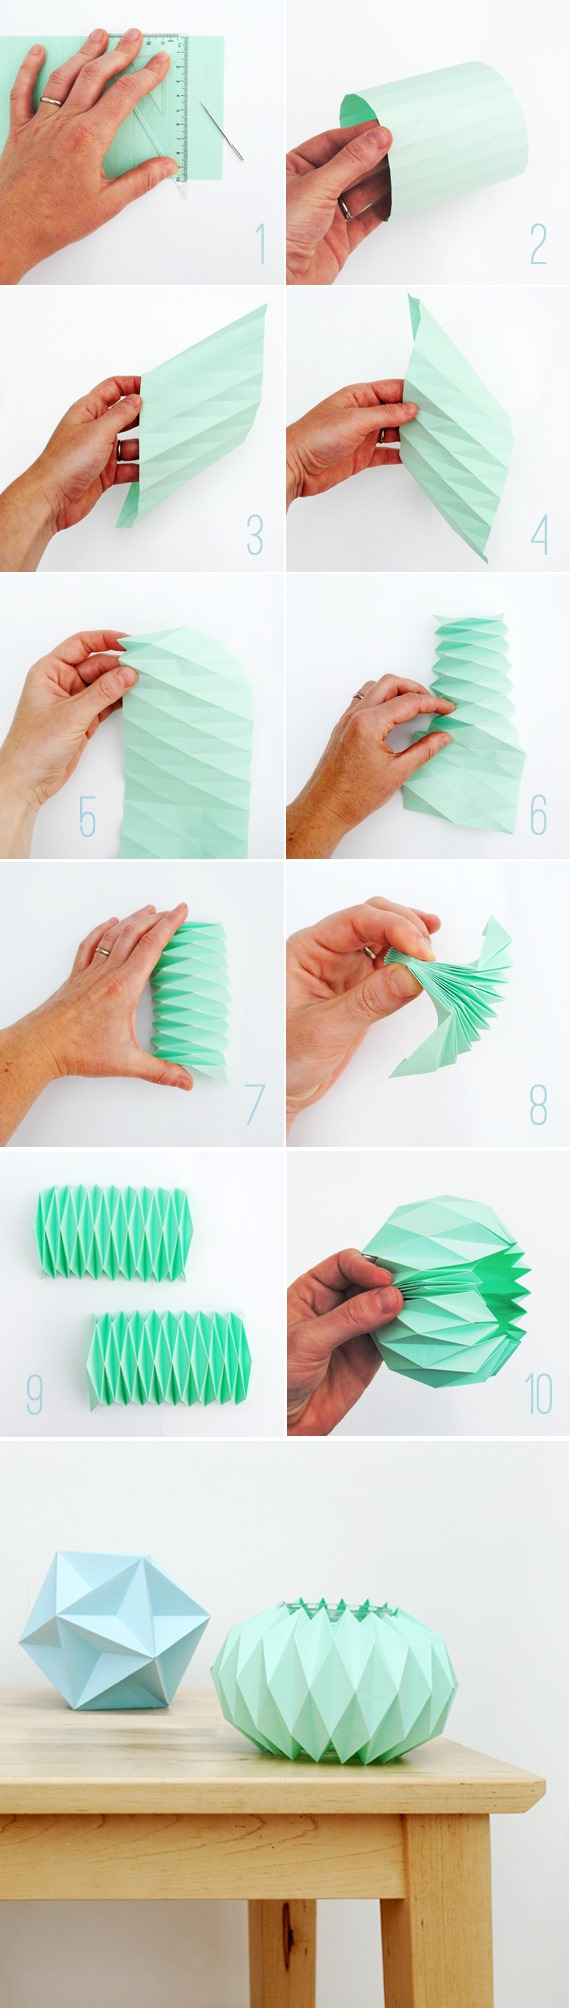 accordion-paper-how-to